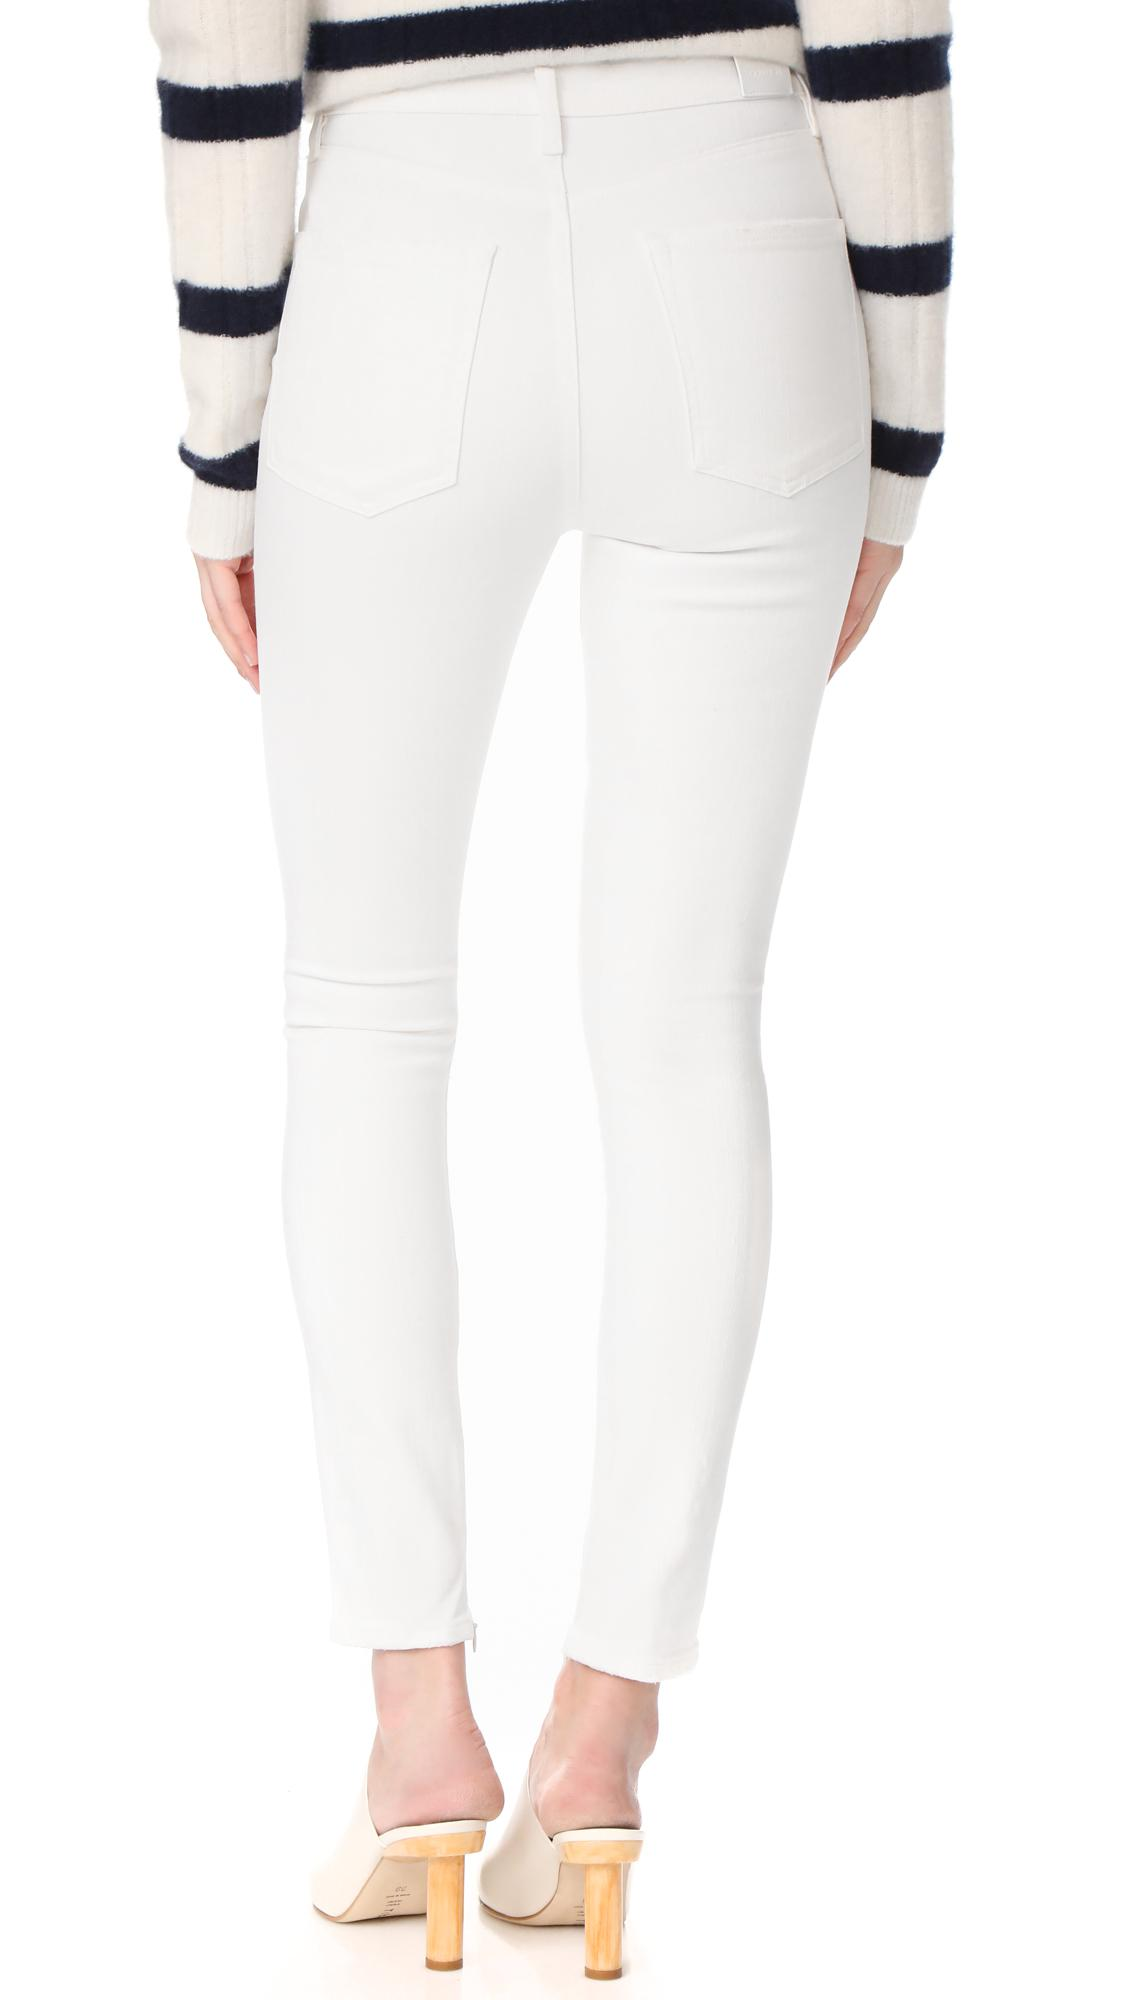 Goldsign Denim The Non Profit Ultra High Rise Ankle Zipper Jeans in Lace (White)